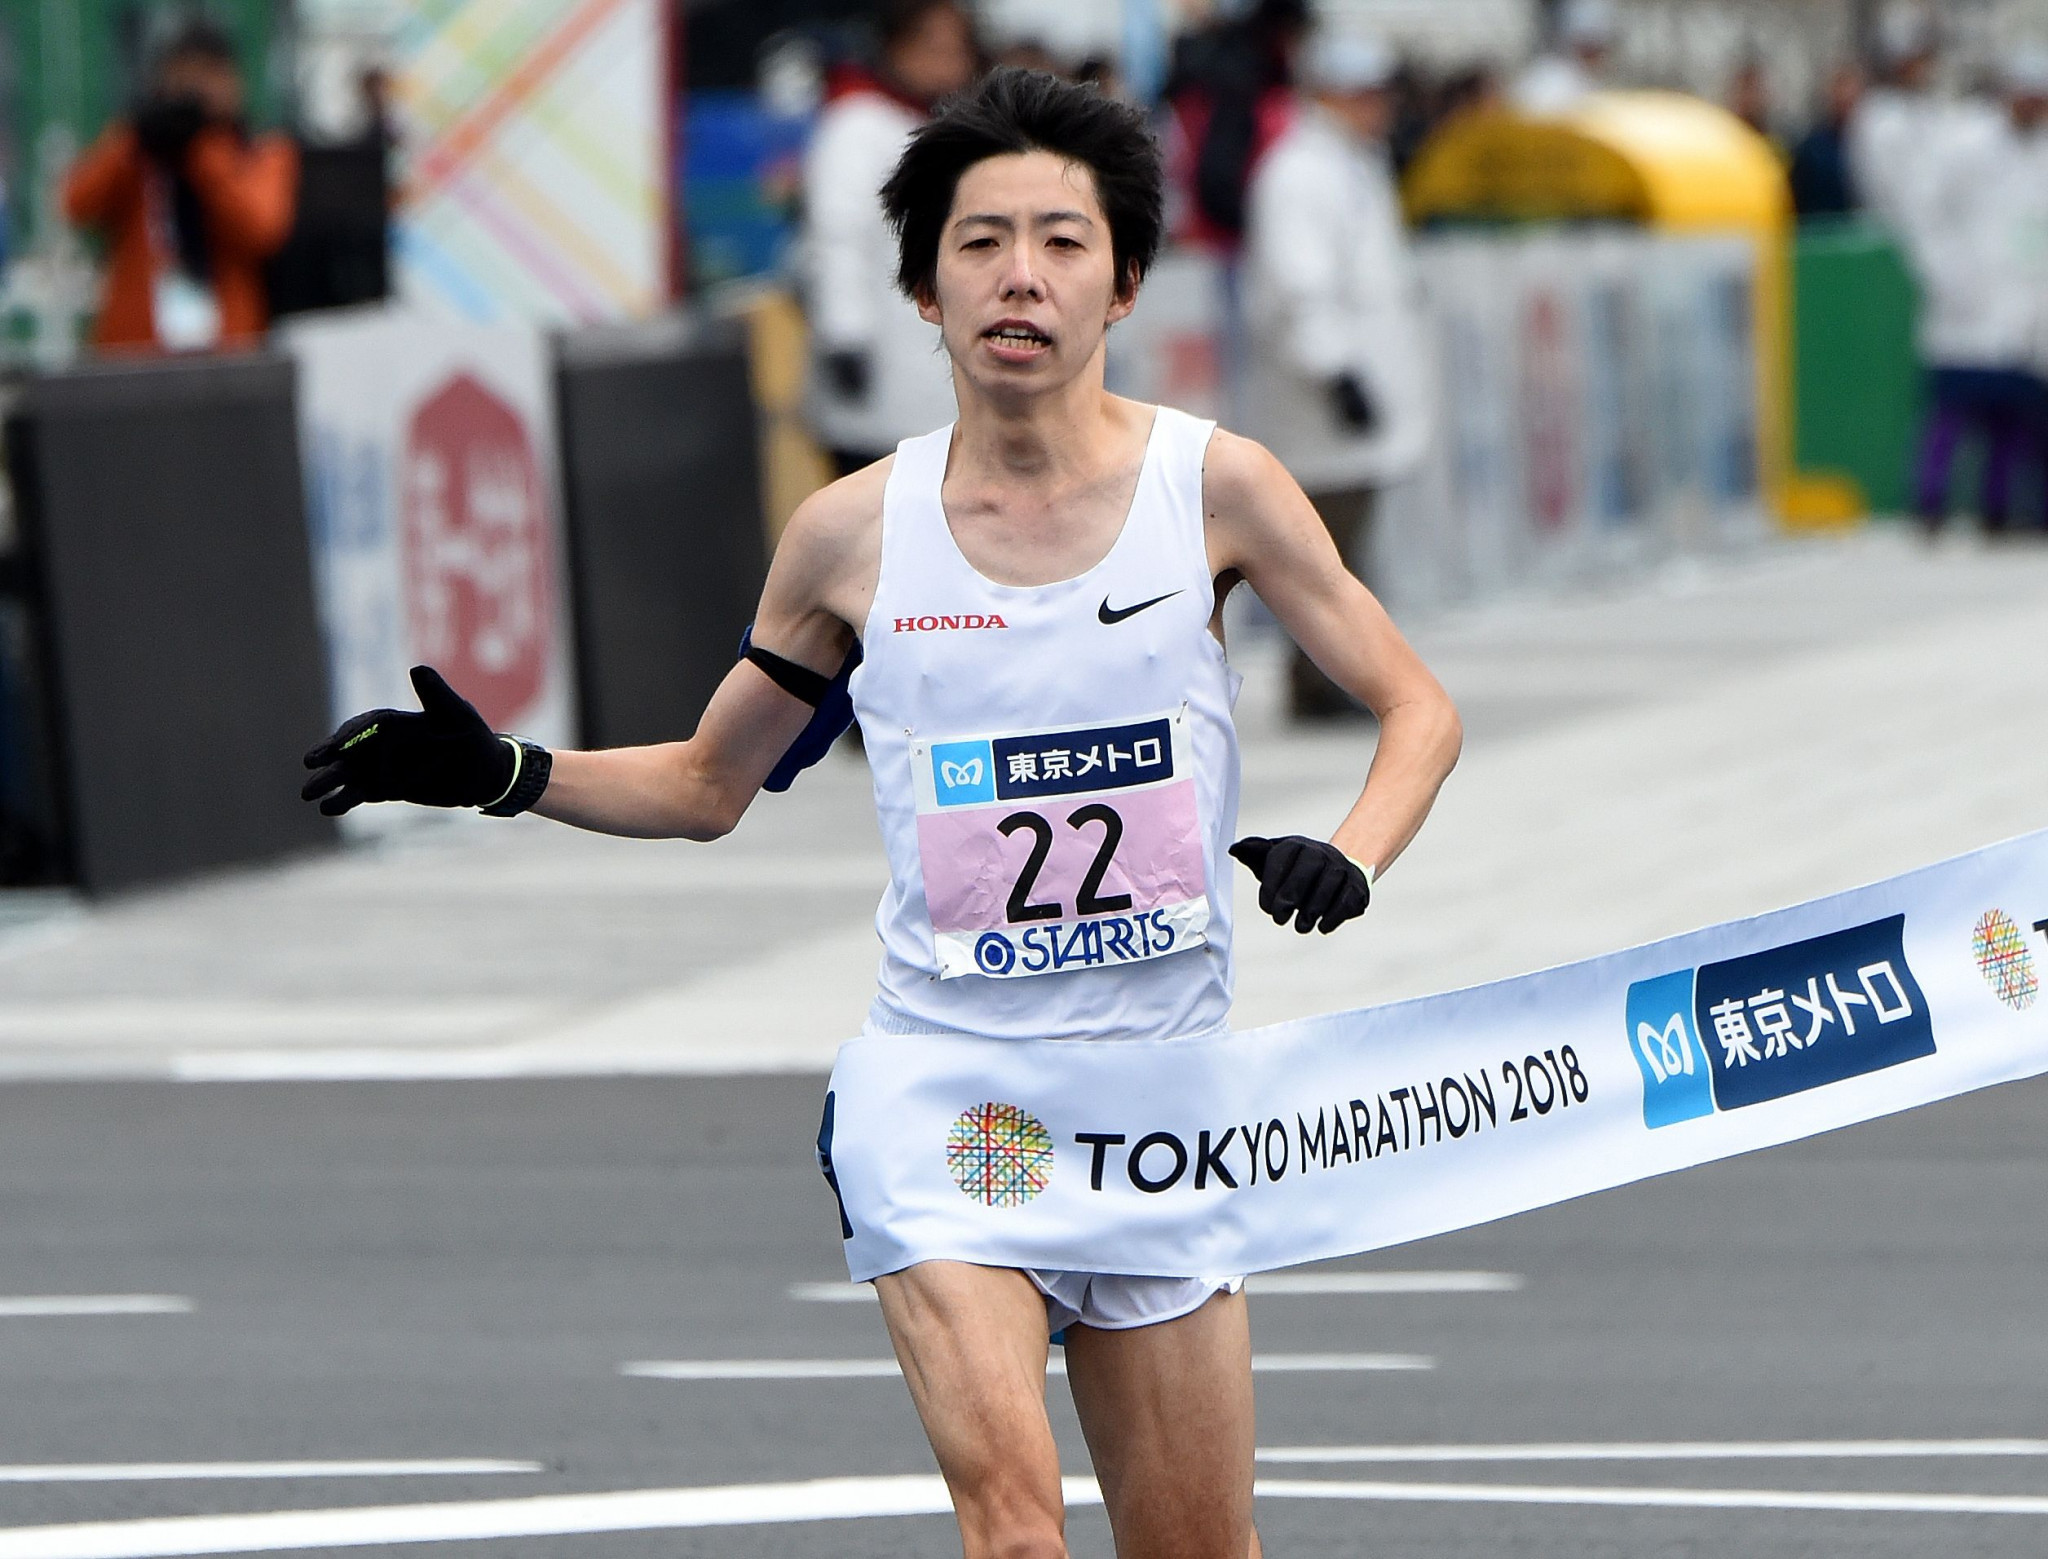 Yuta Shitara will have eyes on an automatic Tokyo 2020 spot ©Getty Images